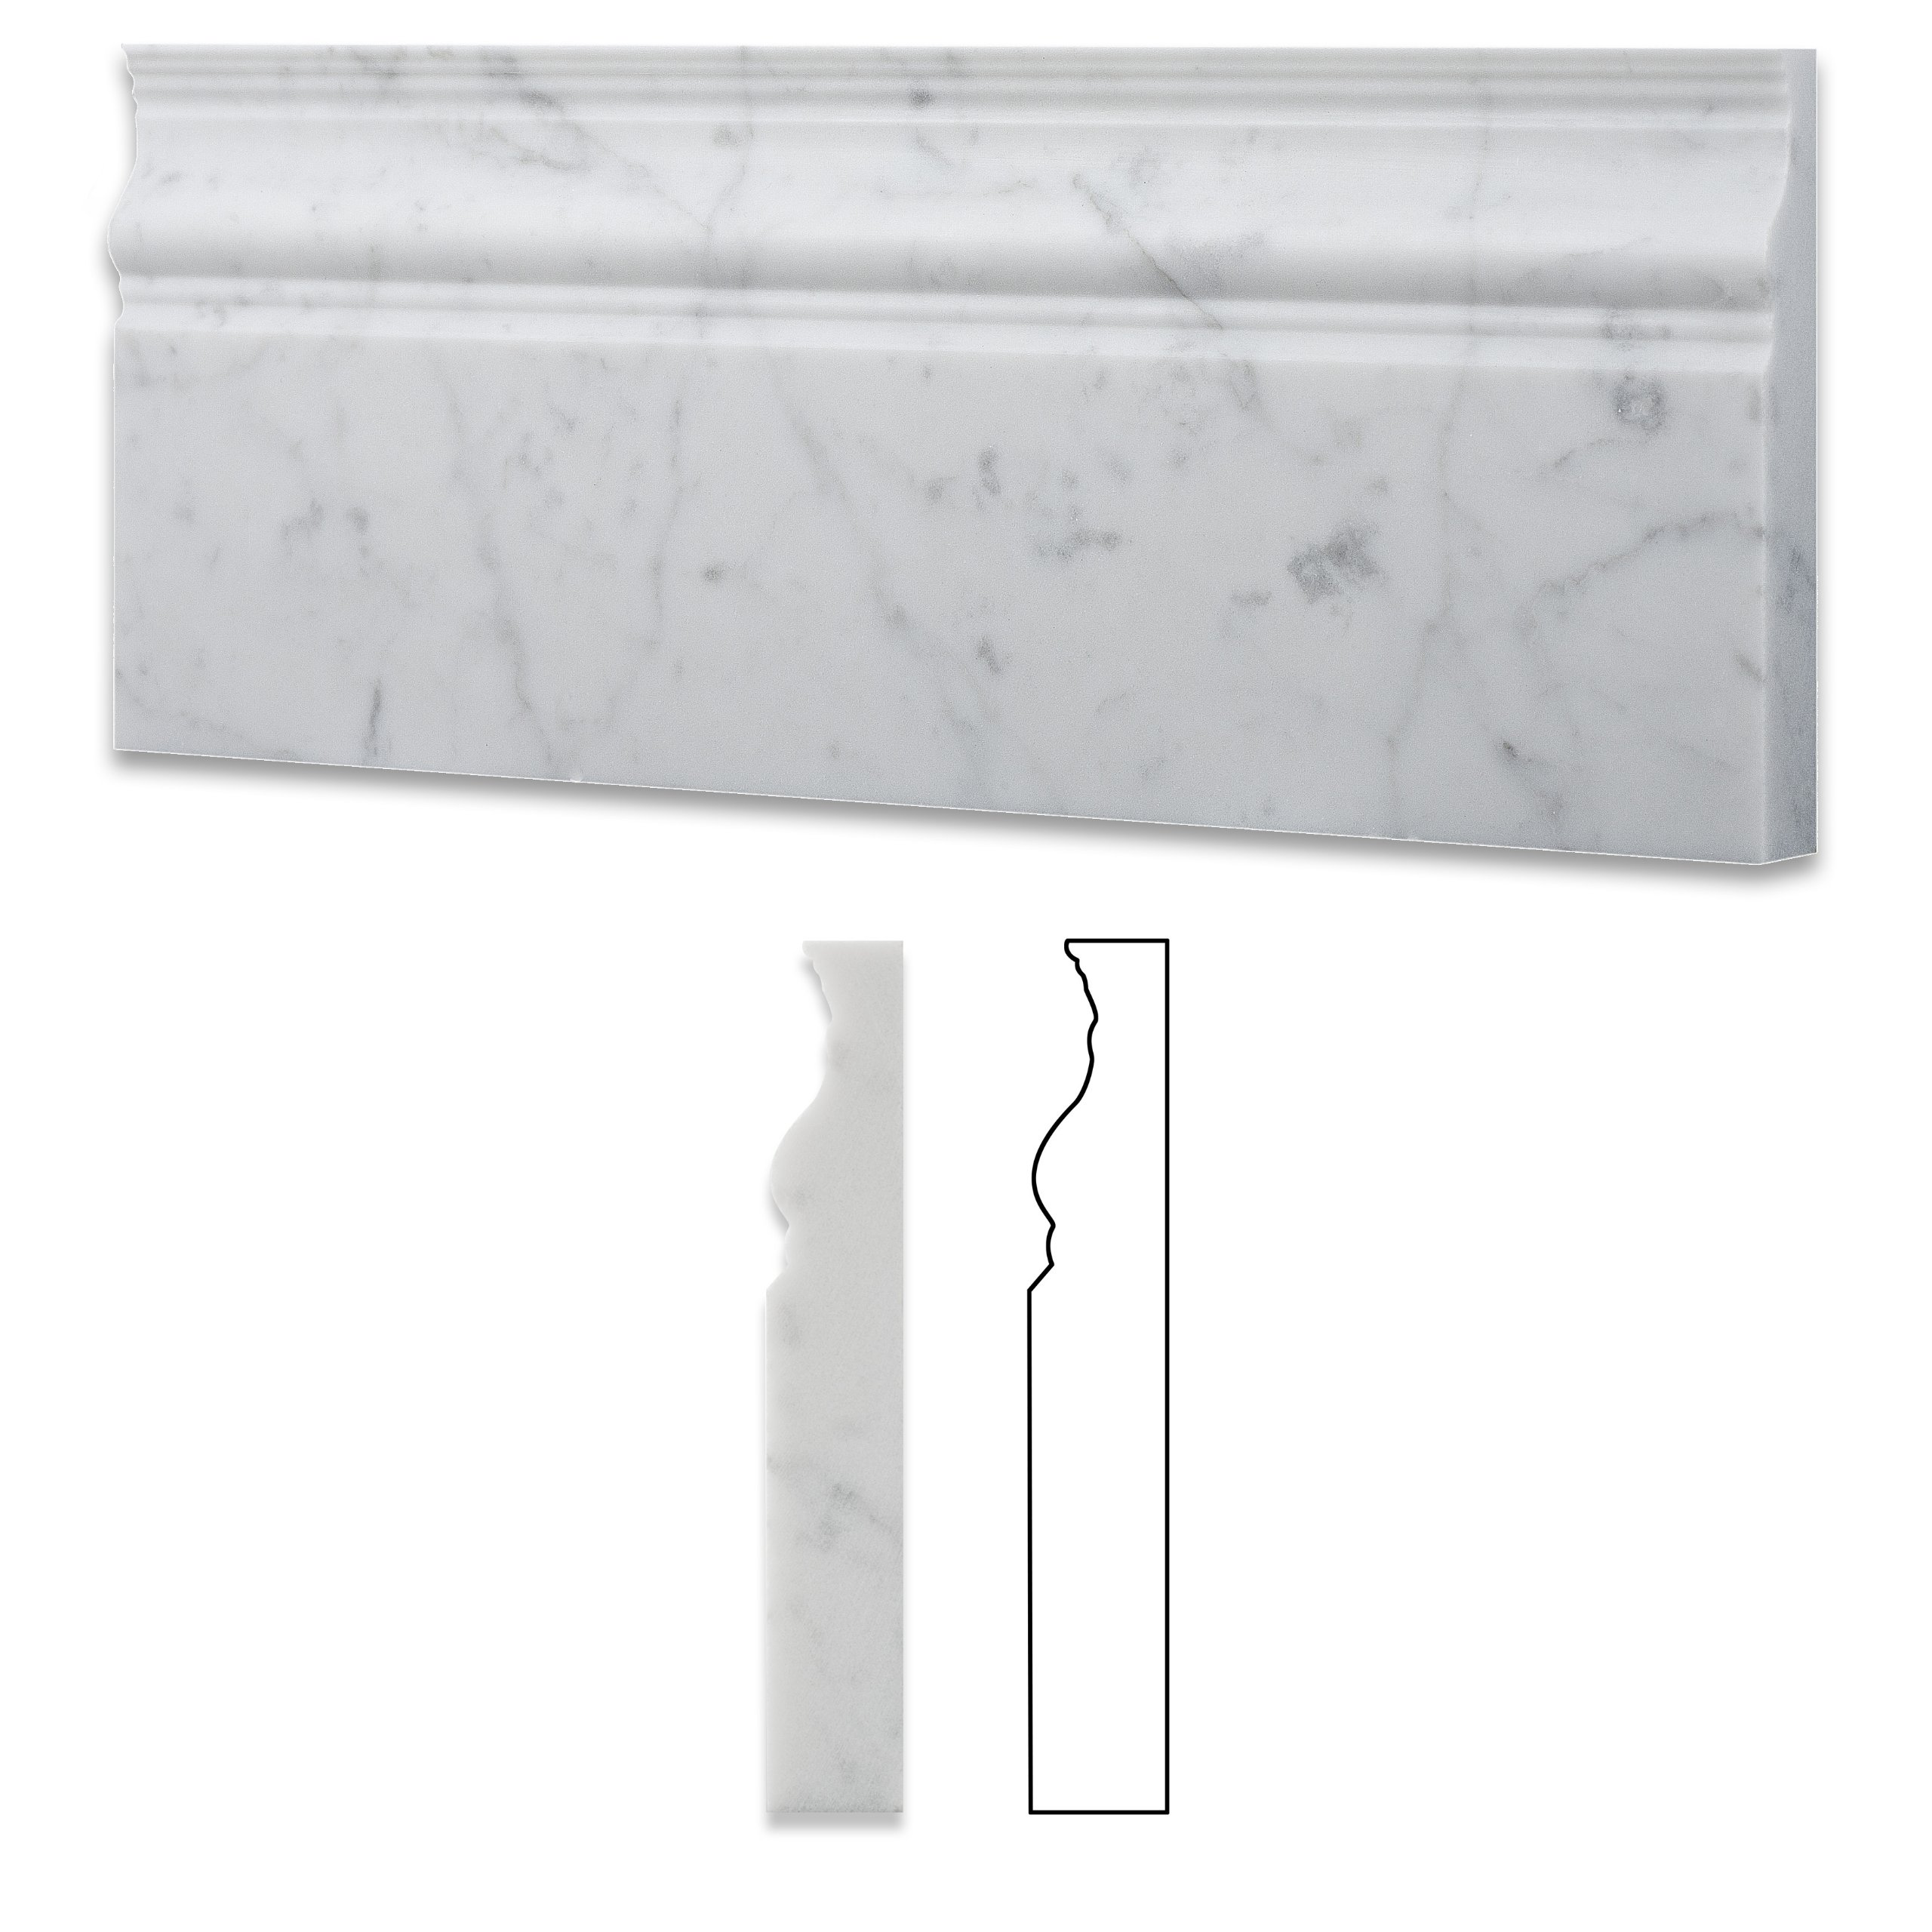 Italian Carrara White Marble Honed 5 X 12 Baseboard - Box of 5 Pcs. by Oracle Moldings (Image #1)